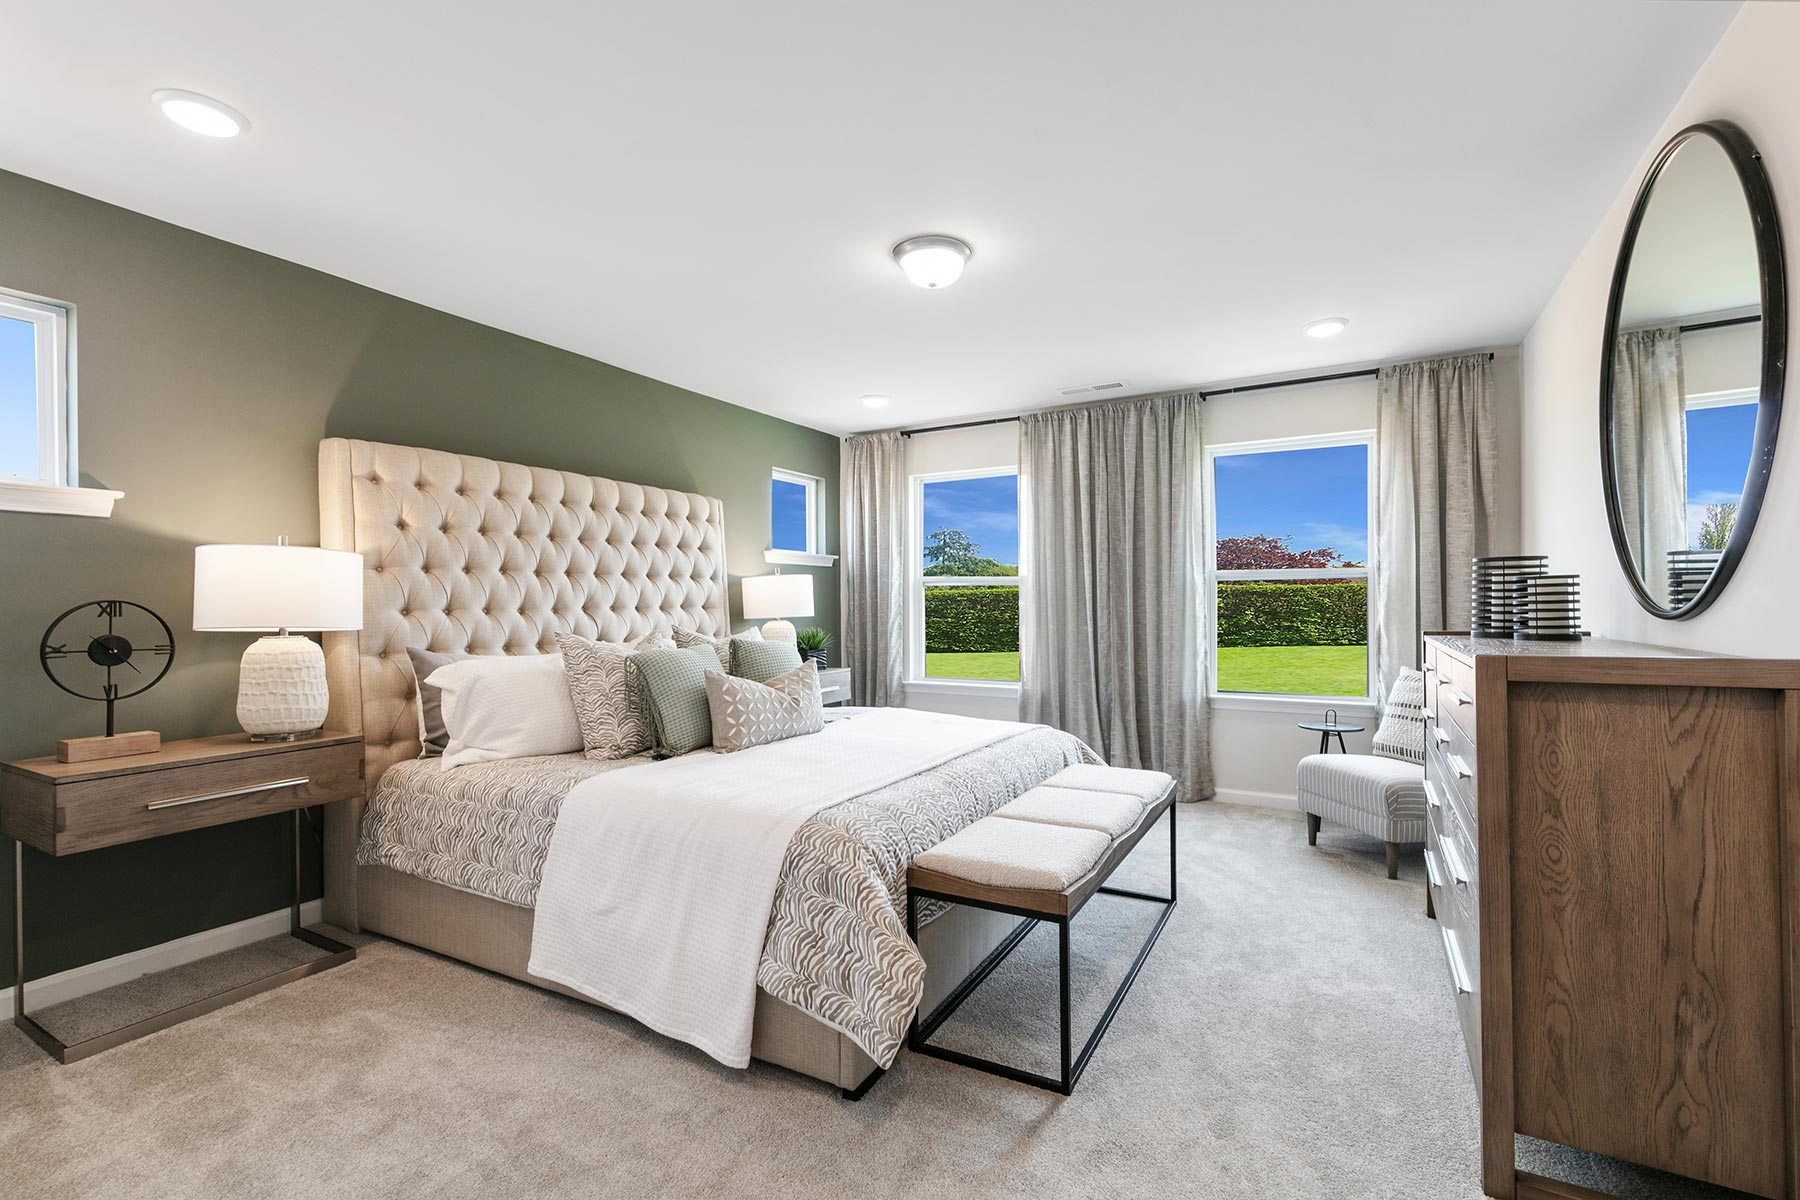 Minglewood Townhomes Bedroom in Garner North Carolina by Mattamy Homes